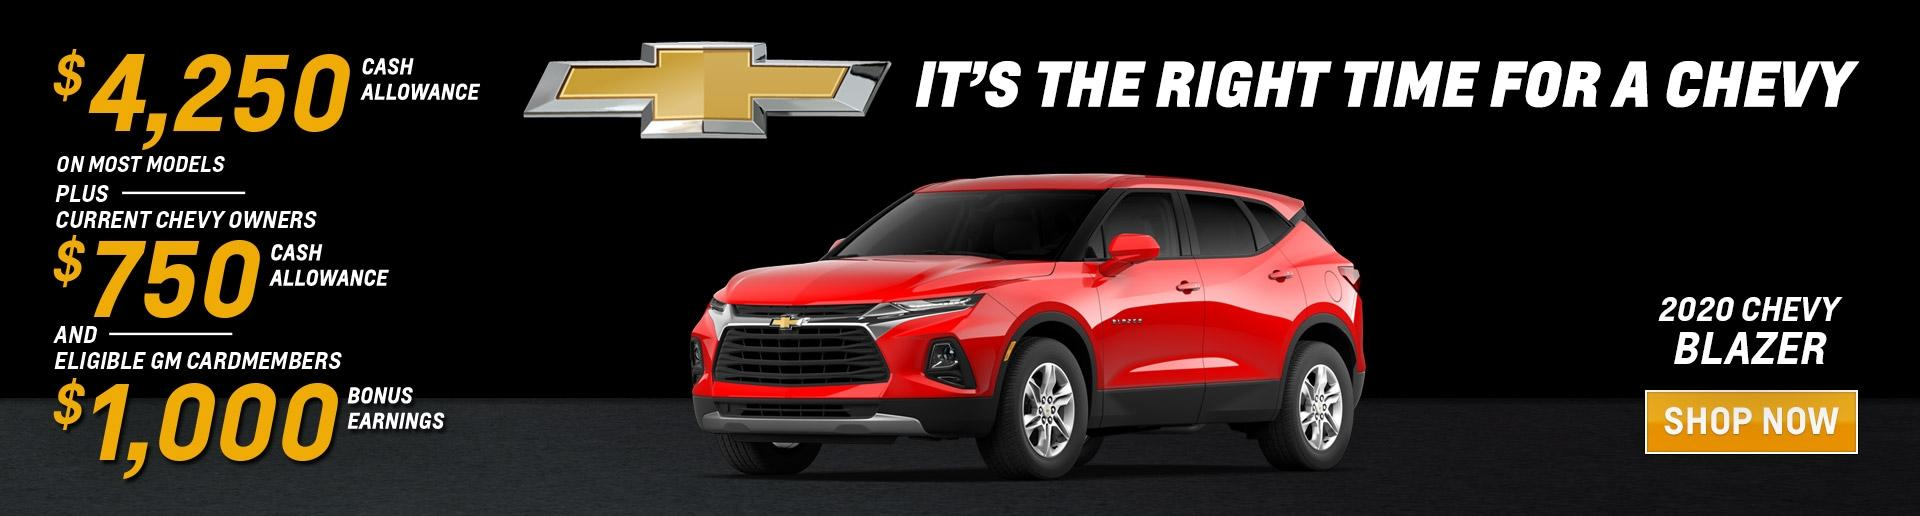 It's the Right Time for a Chevy Blazer | Chevy Drives Chicago | Chicagoland & NW Indiana Chevy Dealers